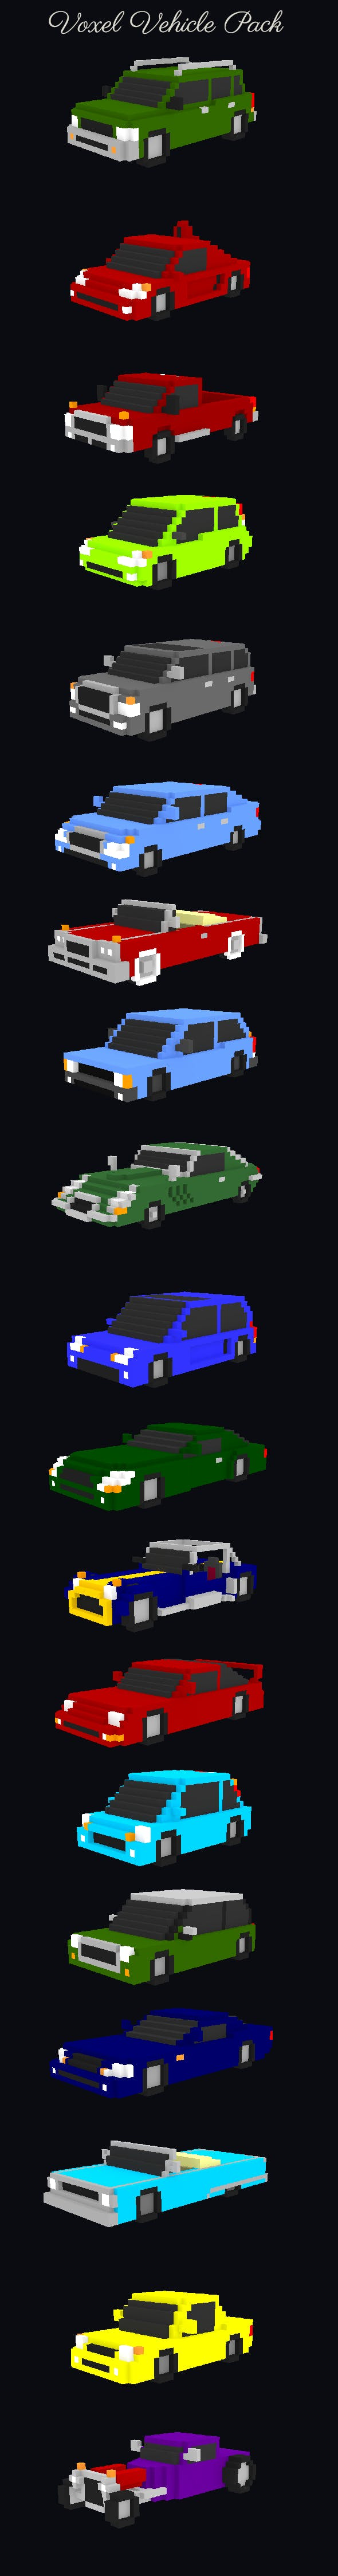 Basic Voxel Vehicle Pack - 3DOcean Item for Sale